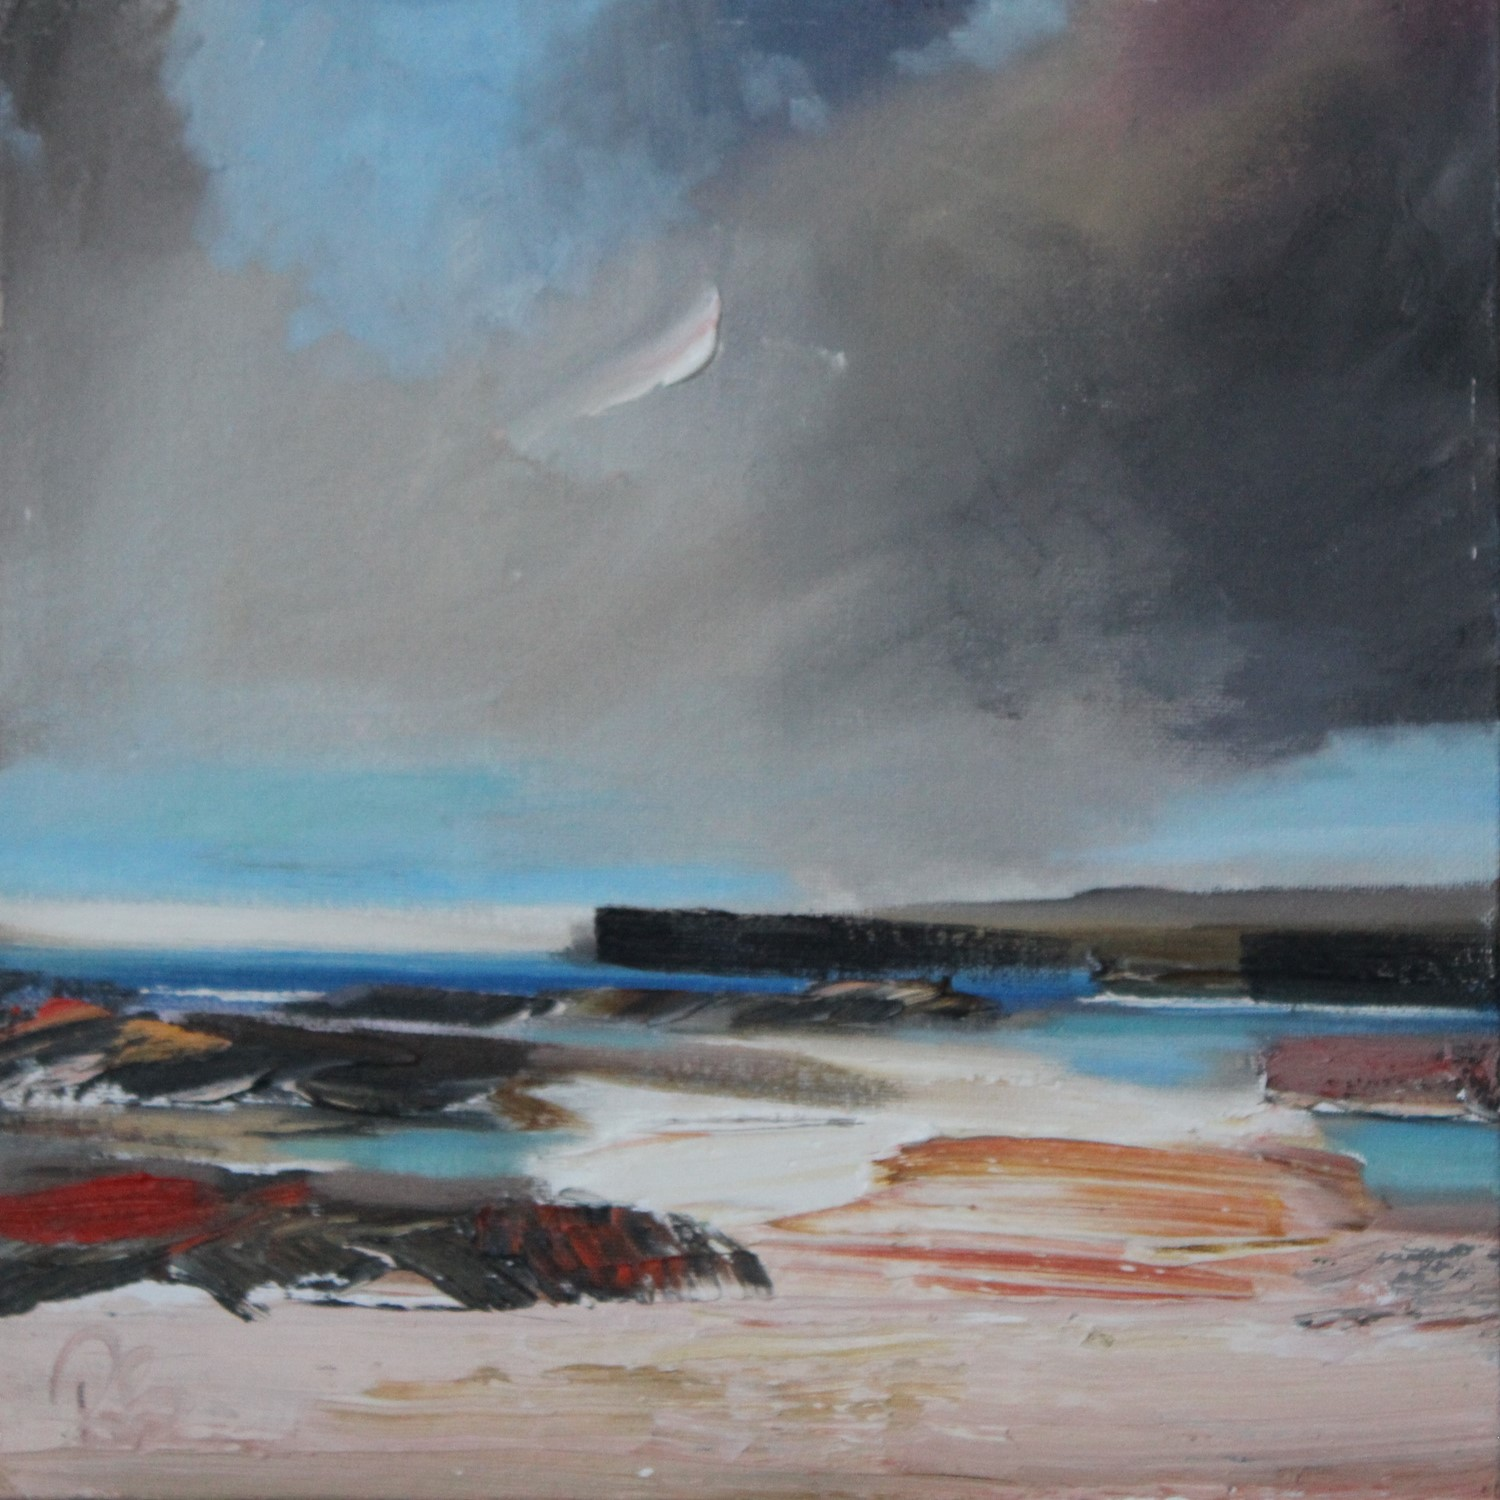 'Heading to the Rock Pools' by artist Rosanne Barr